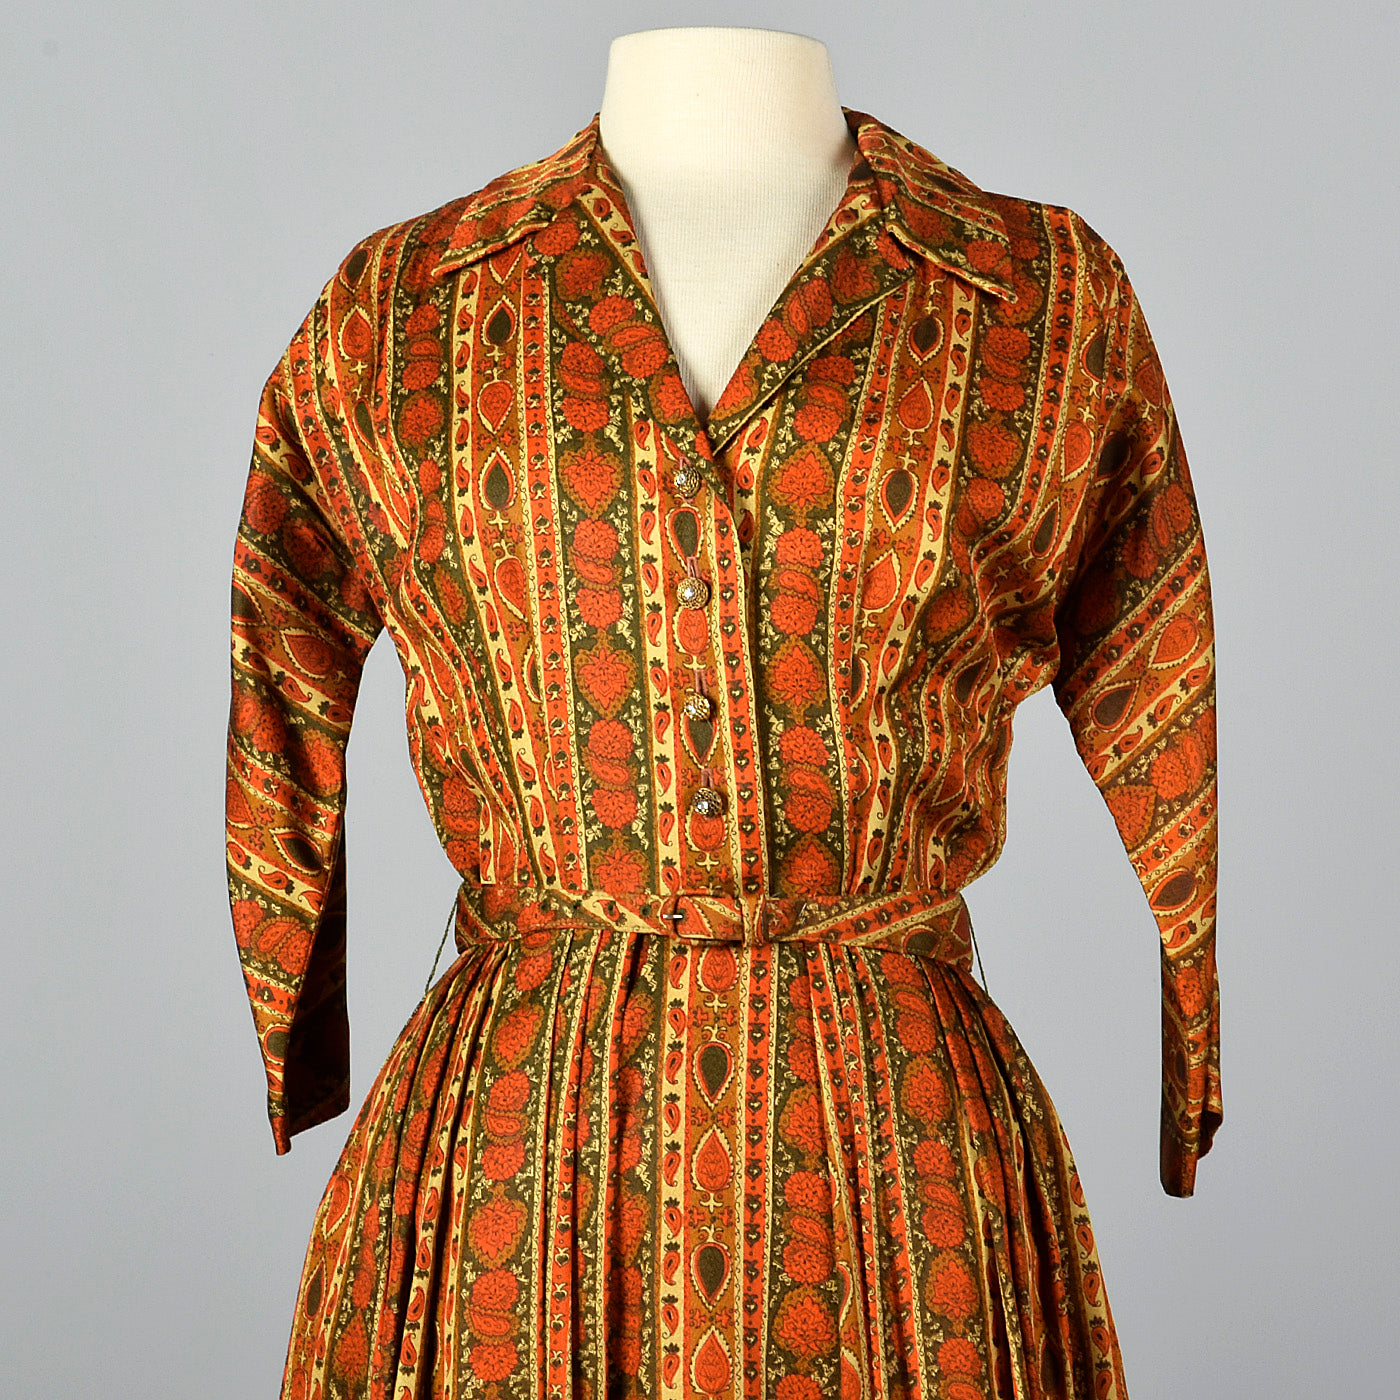 1960s Orange and Green Shirtwaist Dress